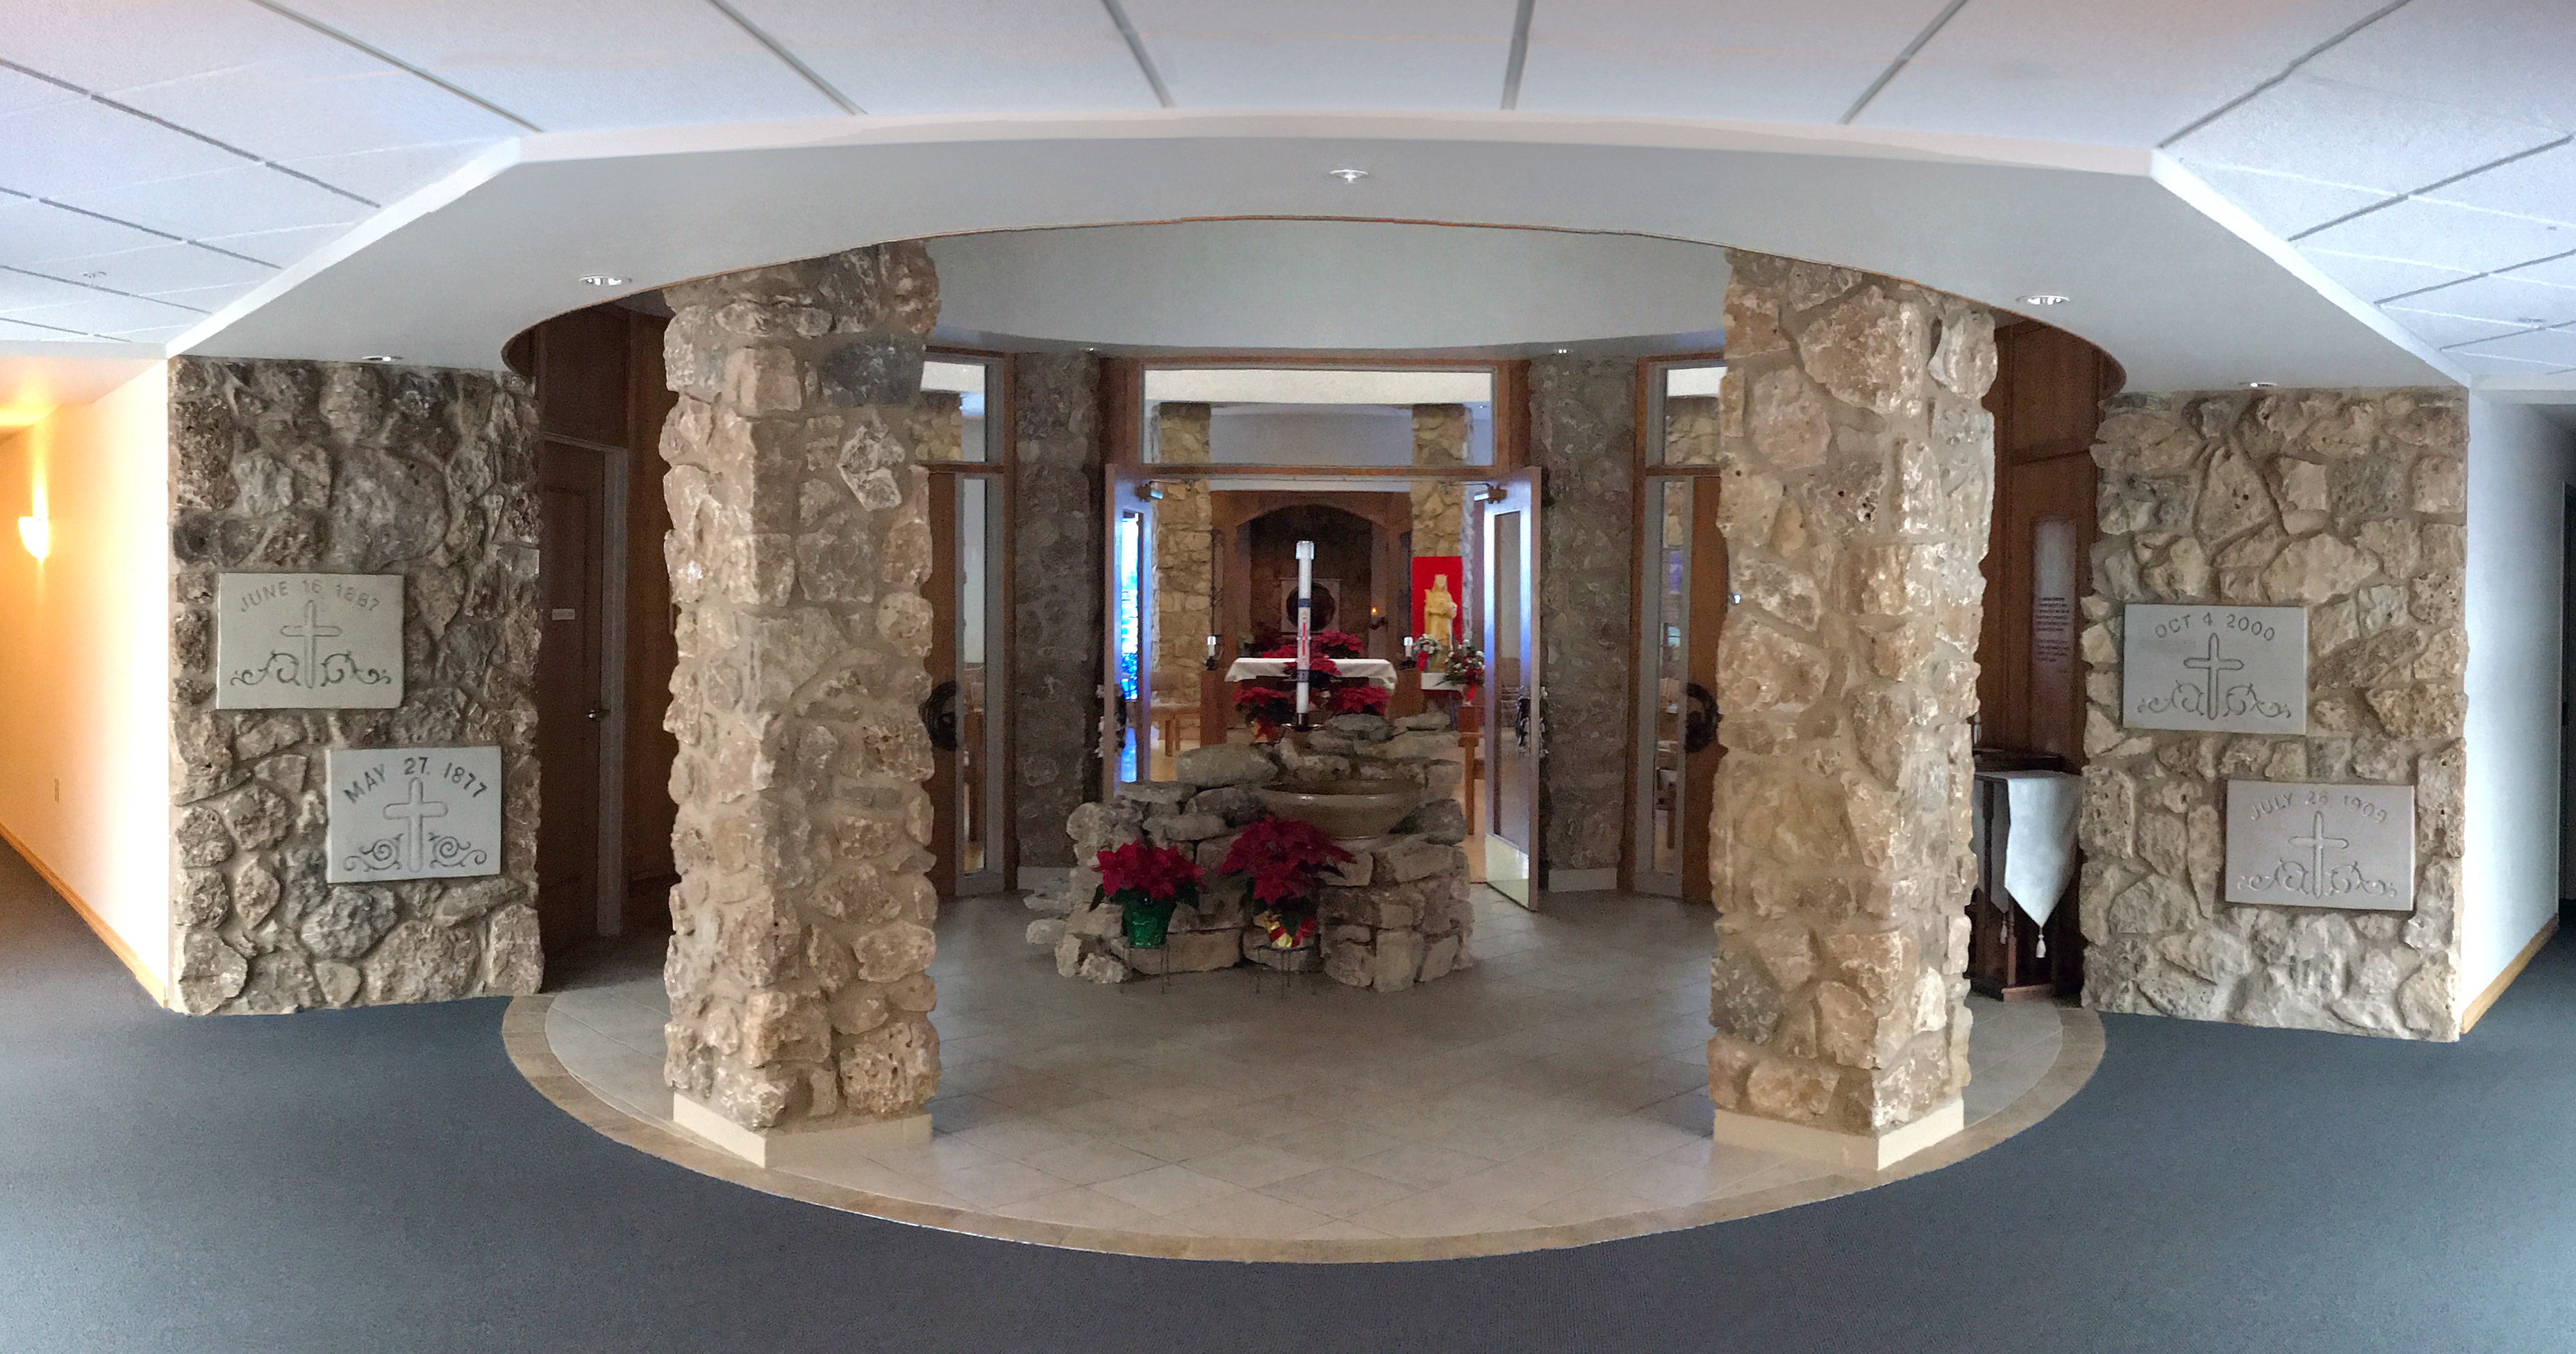 Entrance to the chapel at the CSA motherhouse showing the cornerstones from early motherhouses.